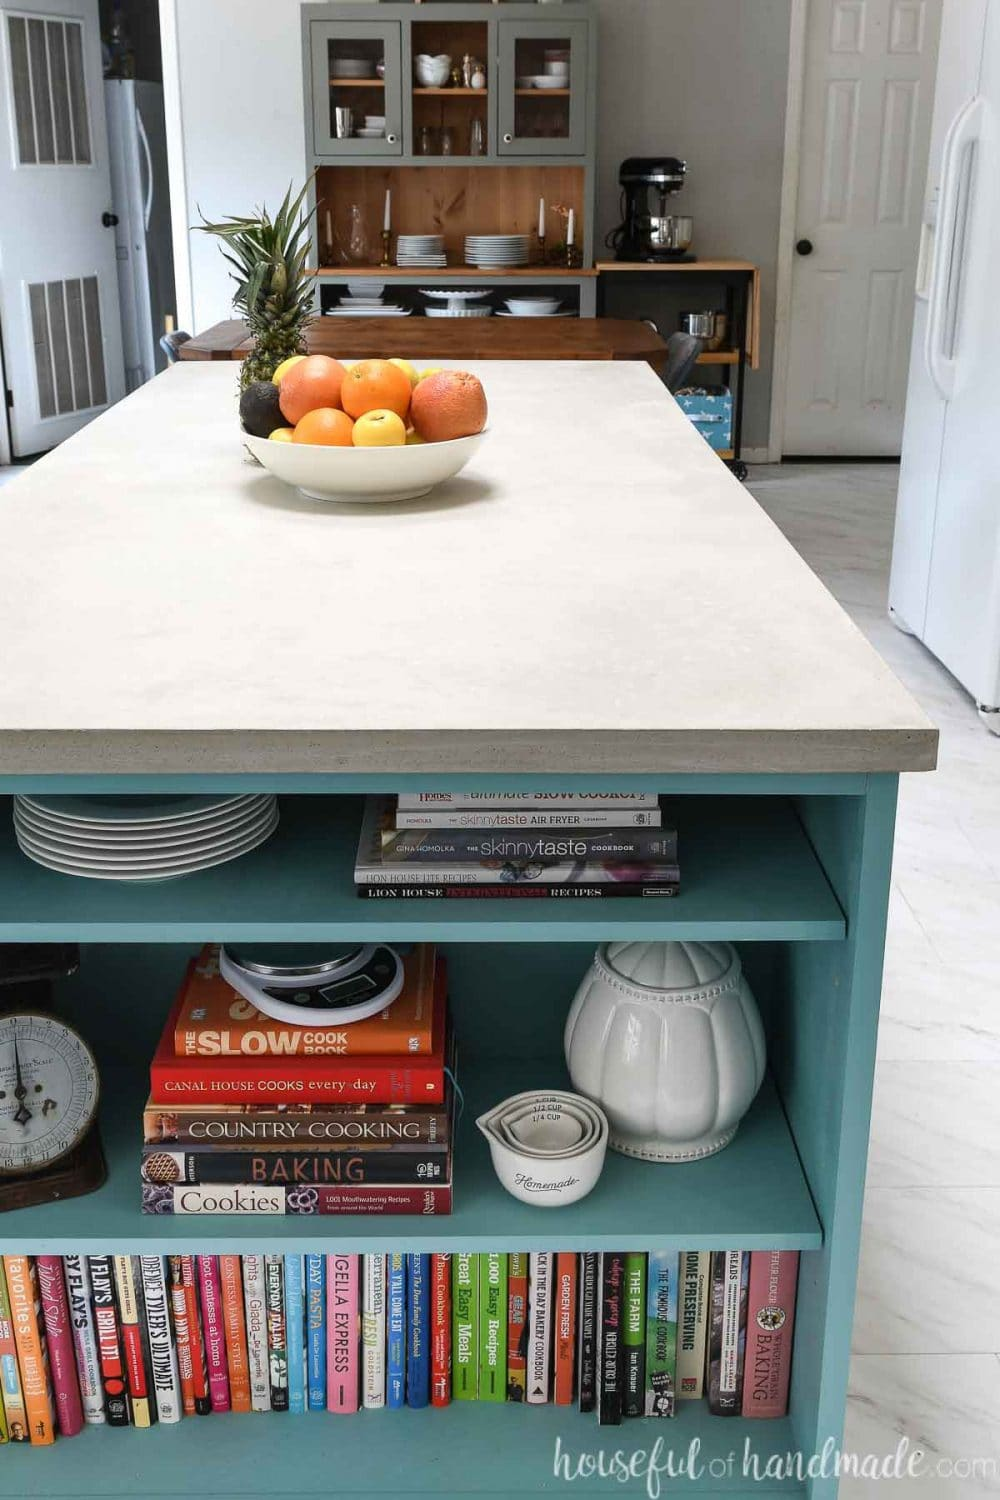 Looking down the kitchen island with a bookshelf on the end and a DIY concrete countertop made from RapidSet concrete on the top.